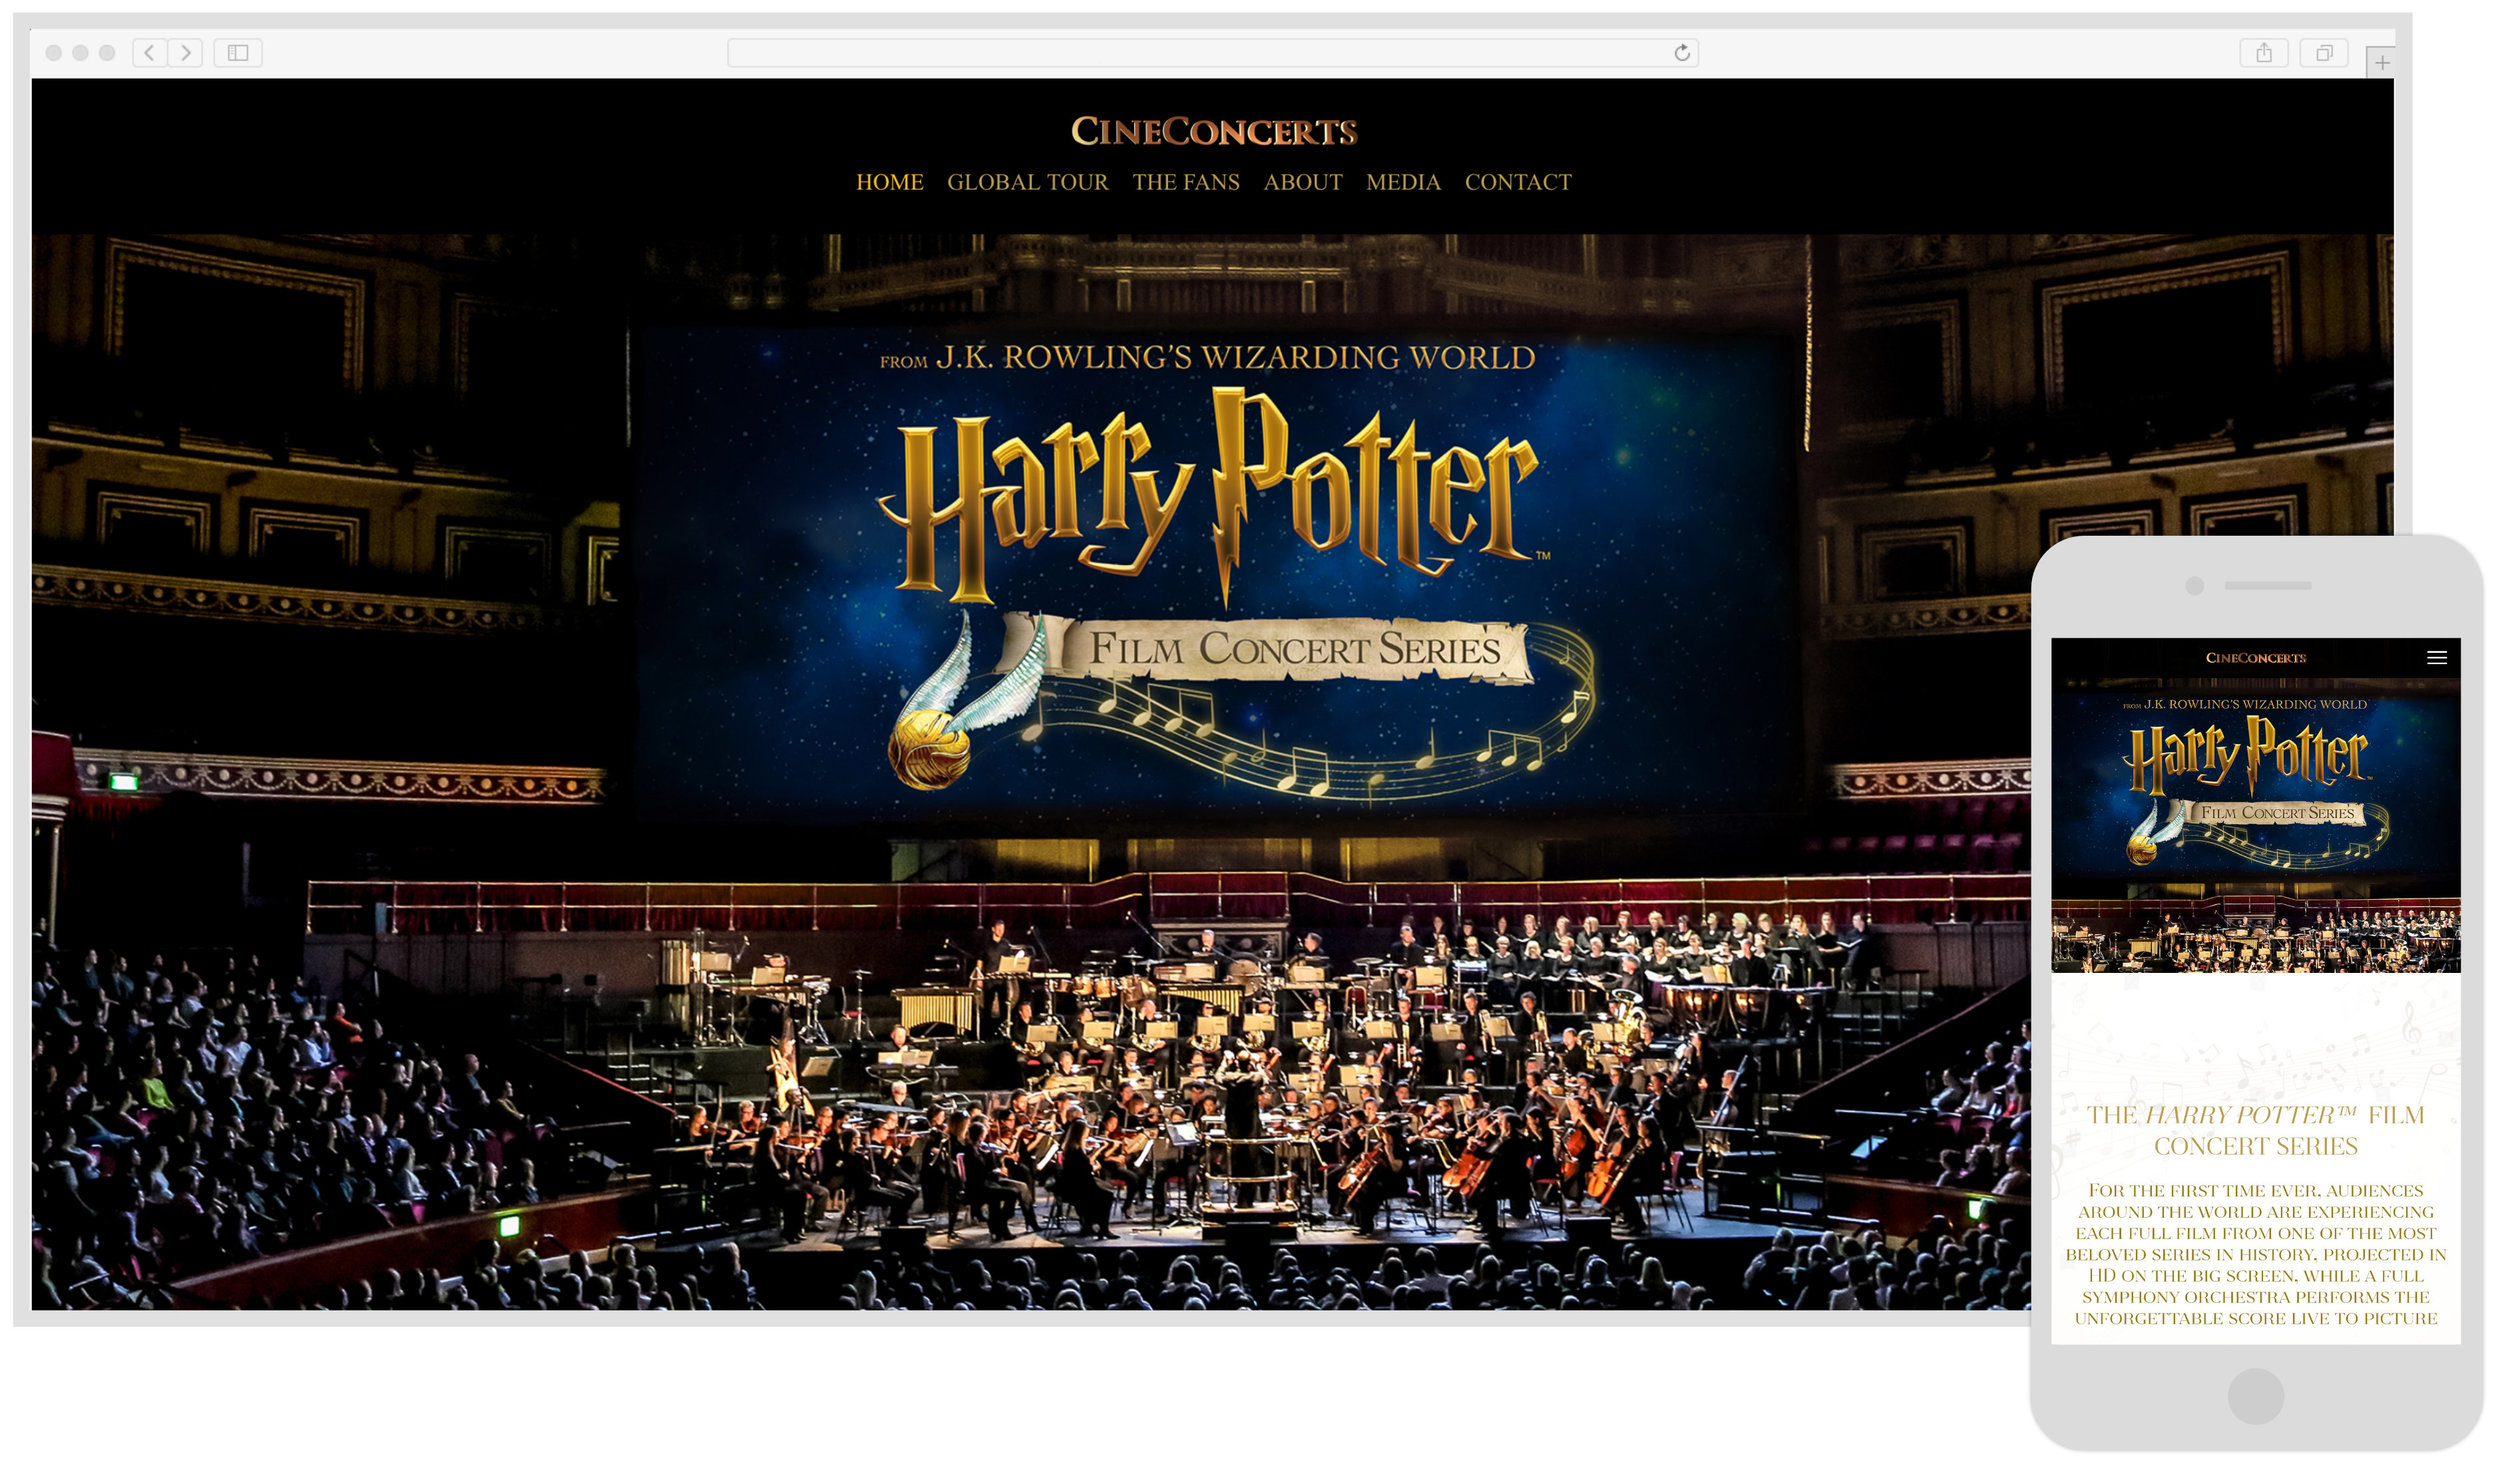 Cineconcerts - Harry Potter Series